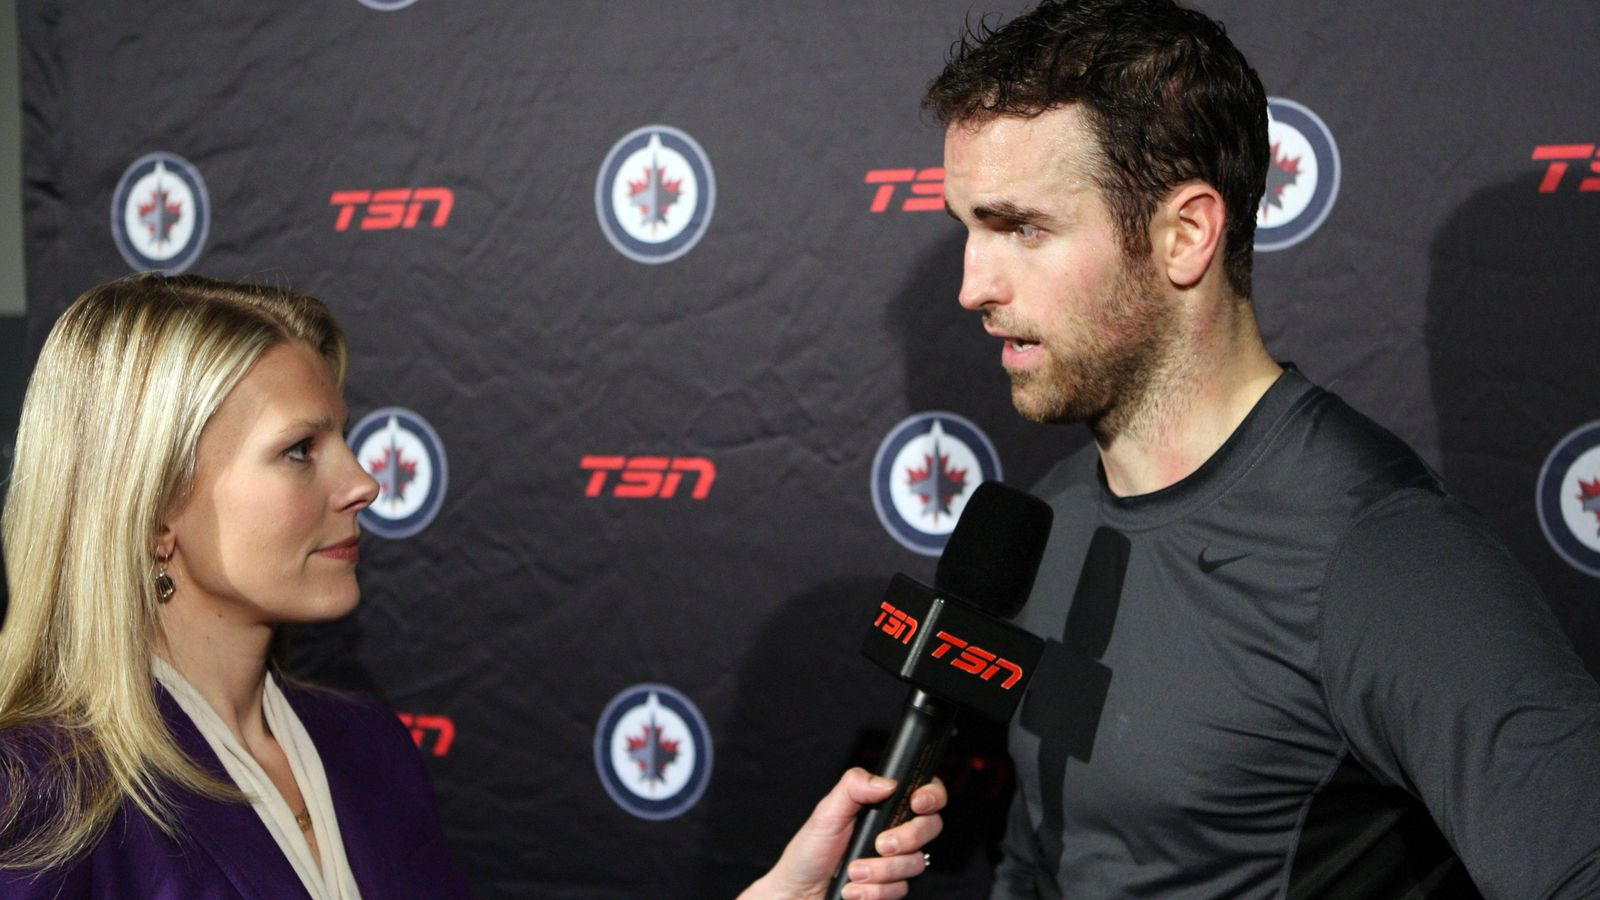 Rogers sportsnet replaces tsn as canada s nhl broadcaster arctic ice